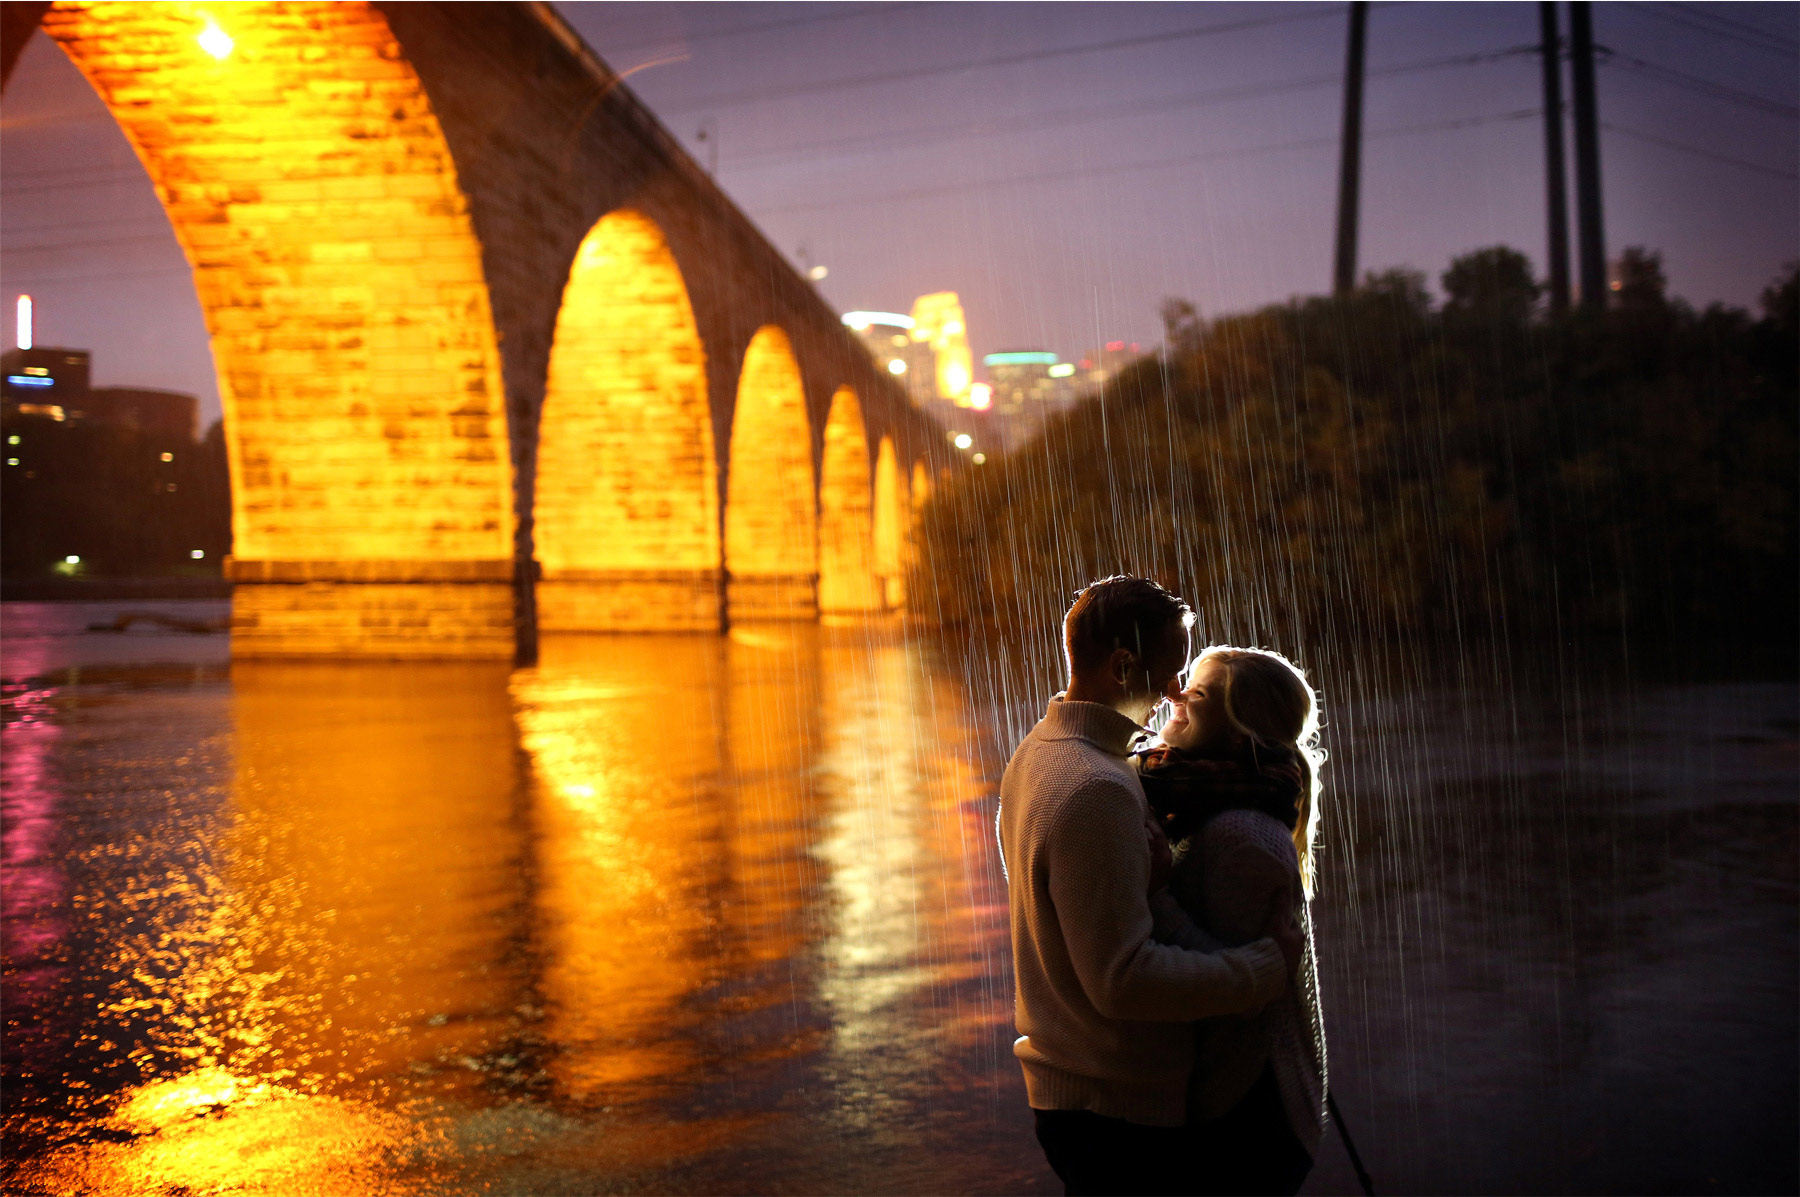 15-Minneapolis-Minnesota-Wedding-Photographer-by-Andrew-Vick-Photography-Fall-Autumn-Engagement-Bride-Groom-Downtown-Skyline-Stone-Arch-Bridge-Night-Kiss-Mississippi-River-Rain-Mallory-and-Kyle.jpg